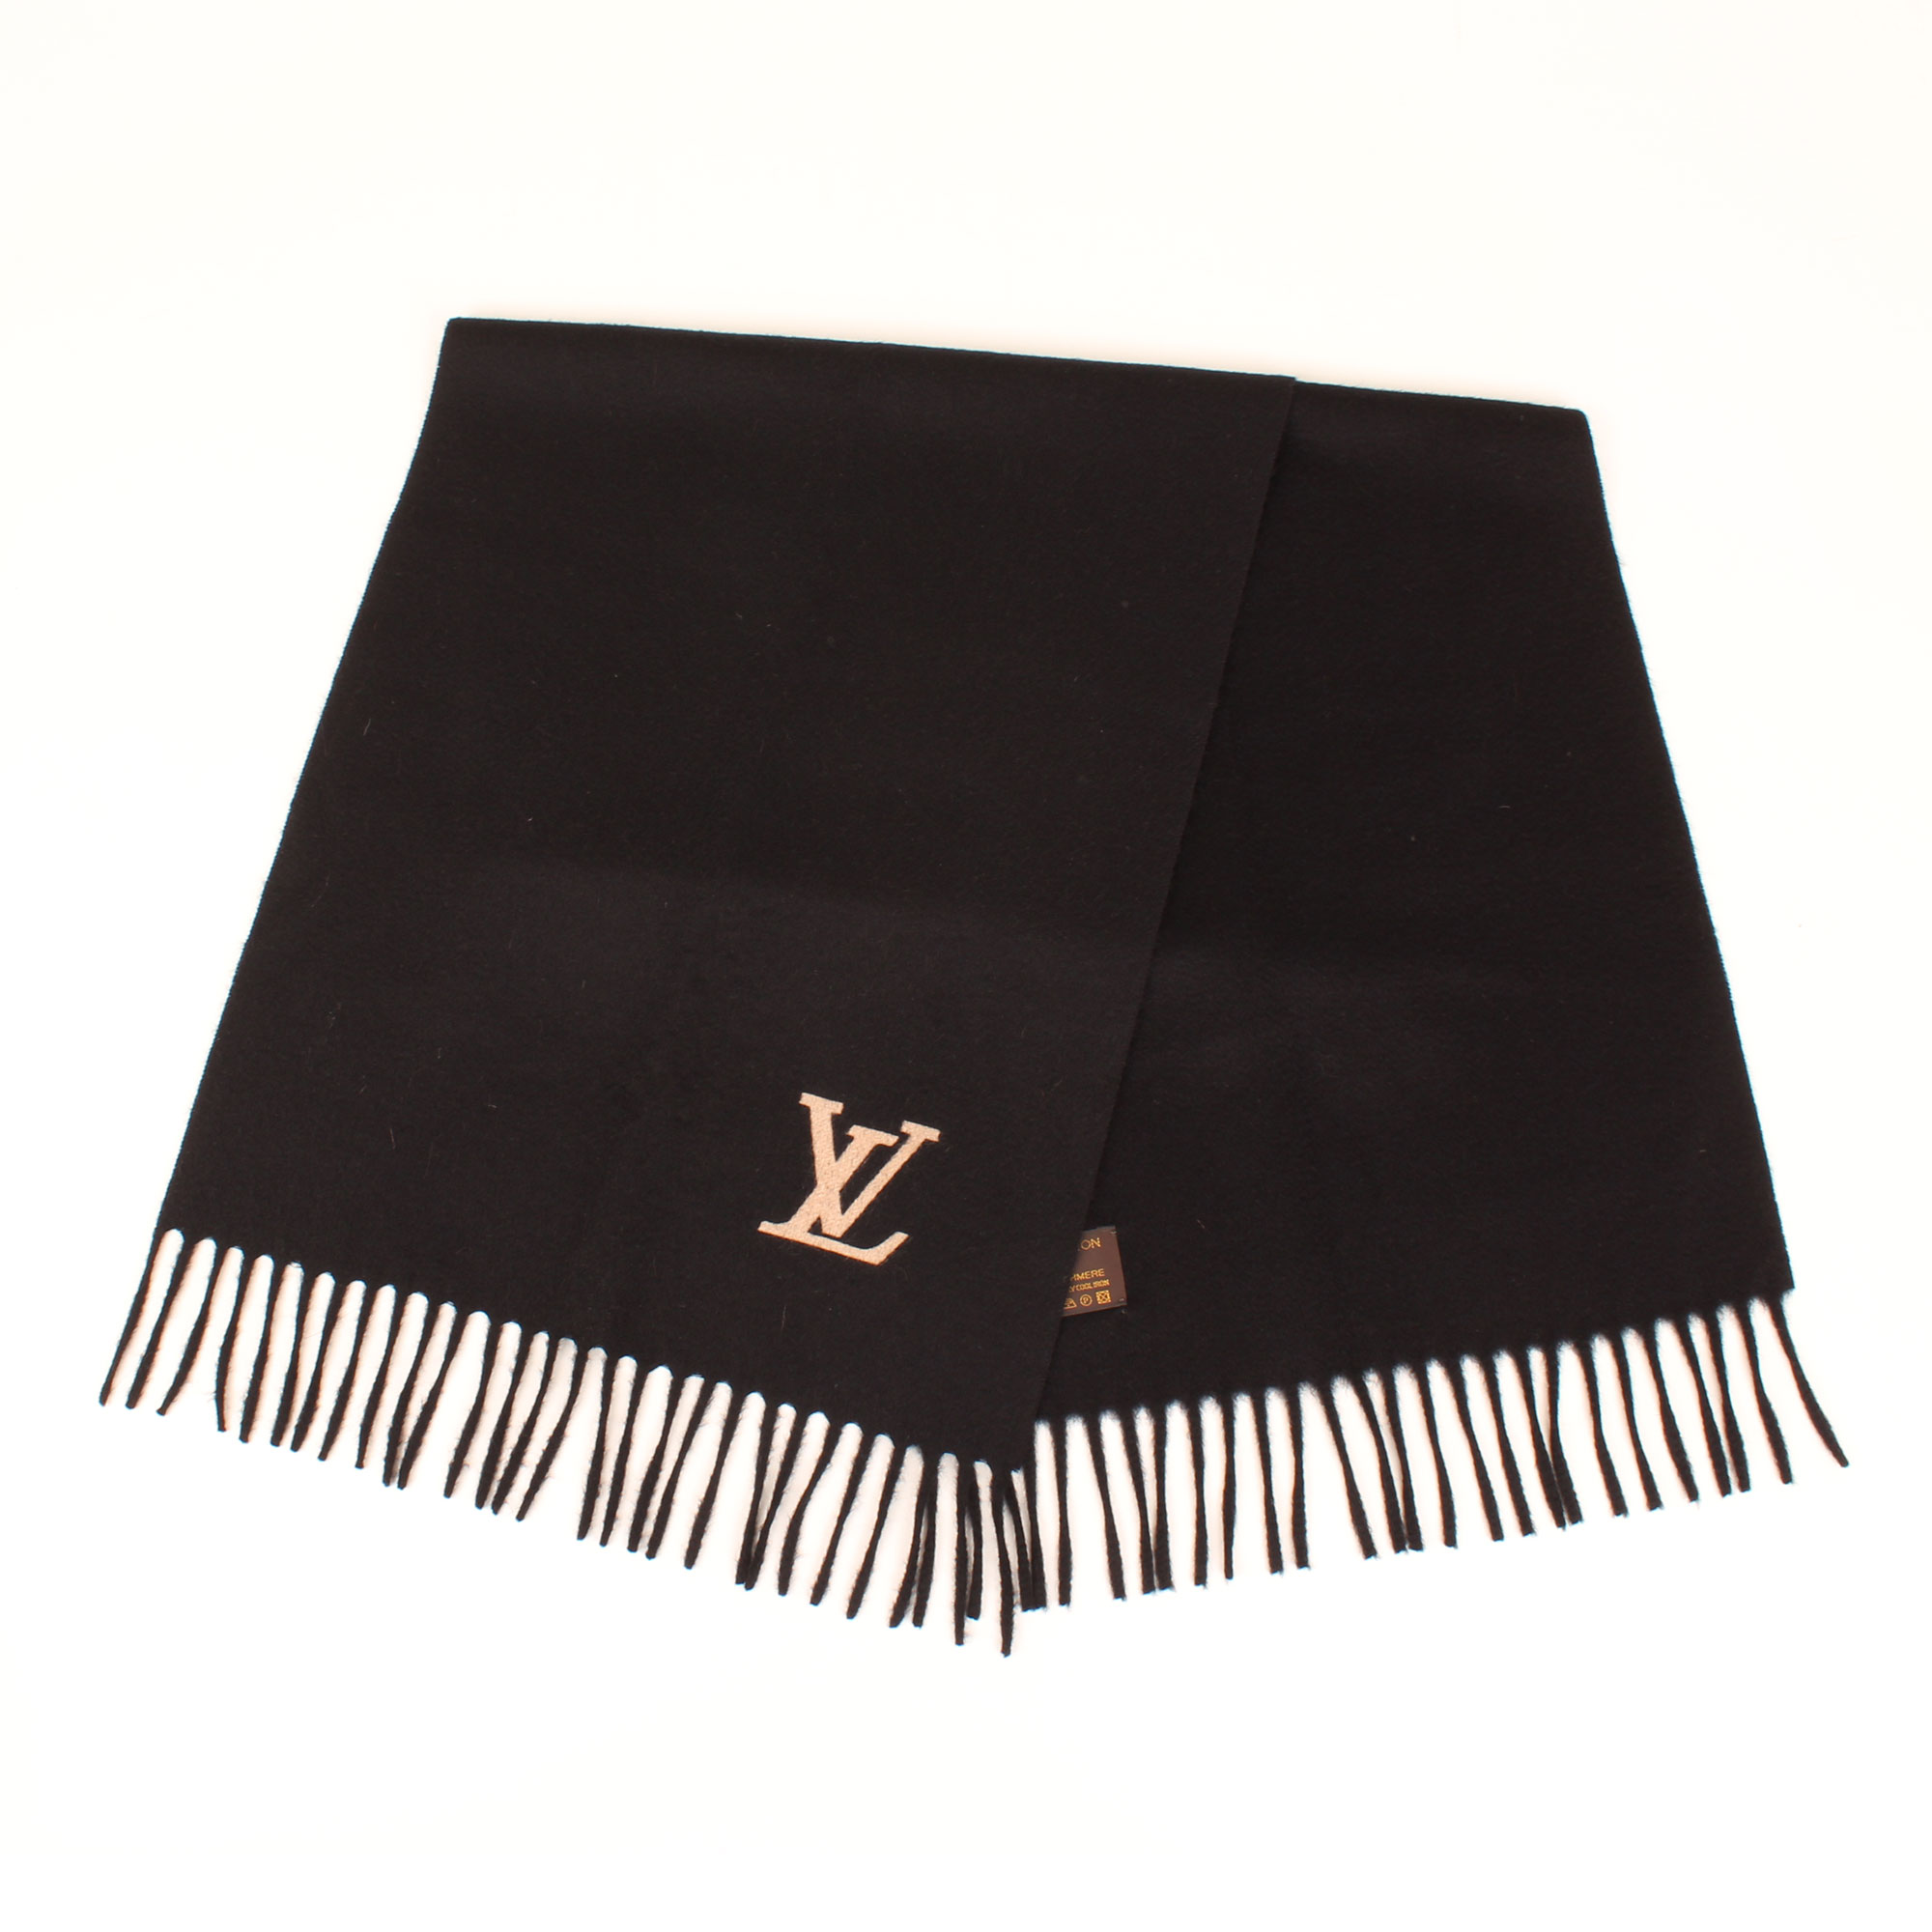 scarf-louis-vuitton-jehlam-cashmere-black-extended